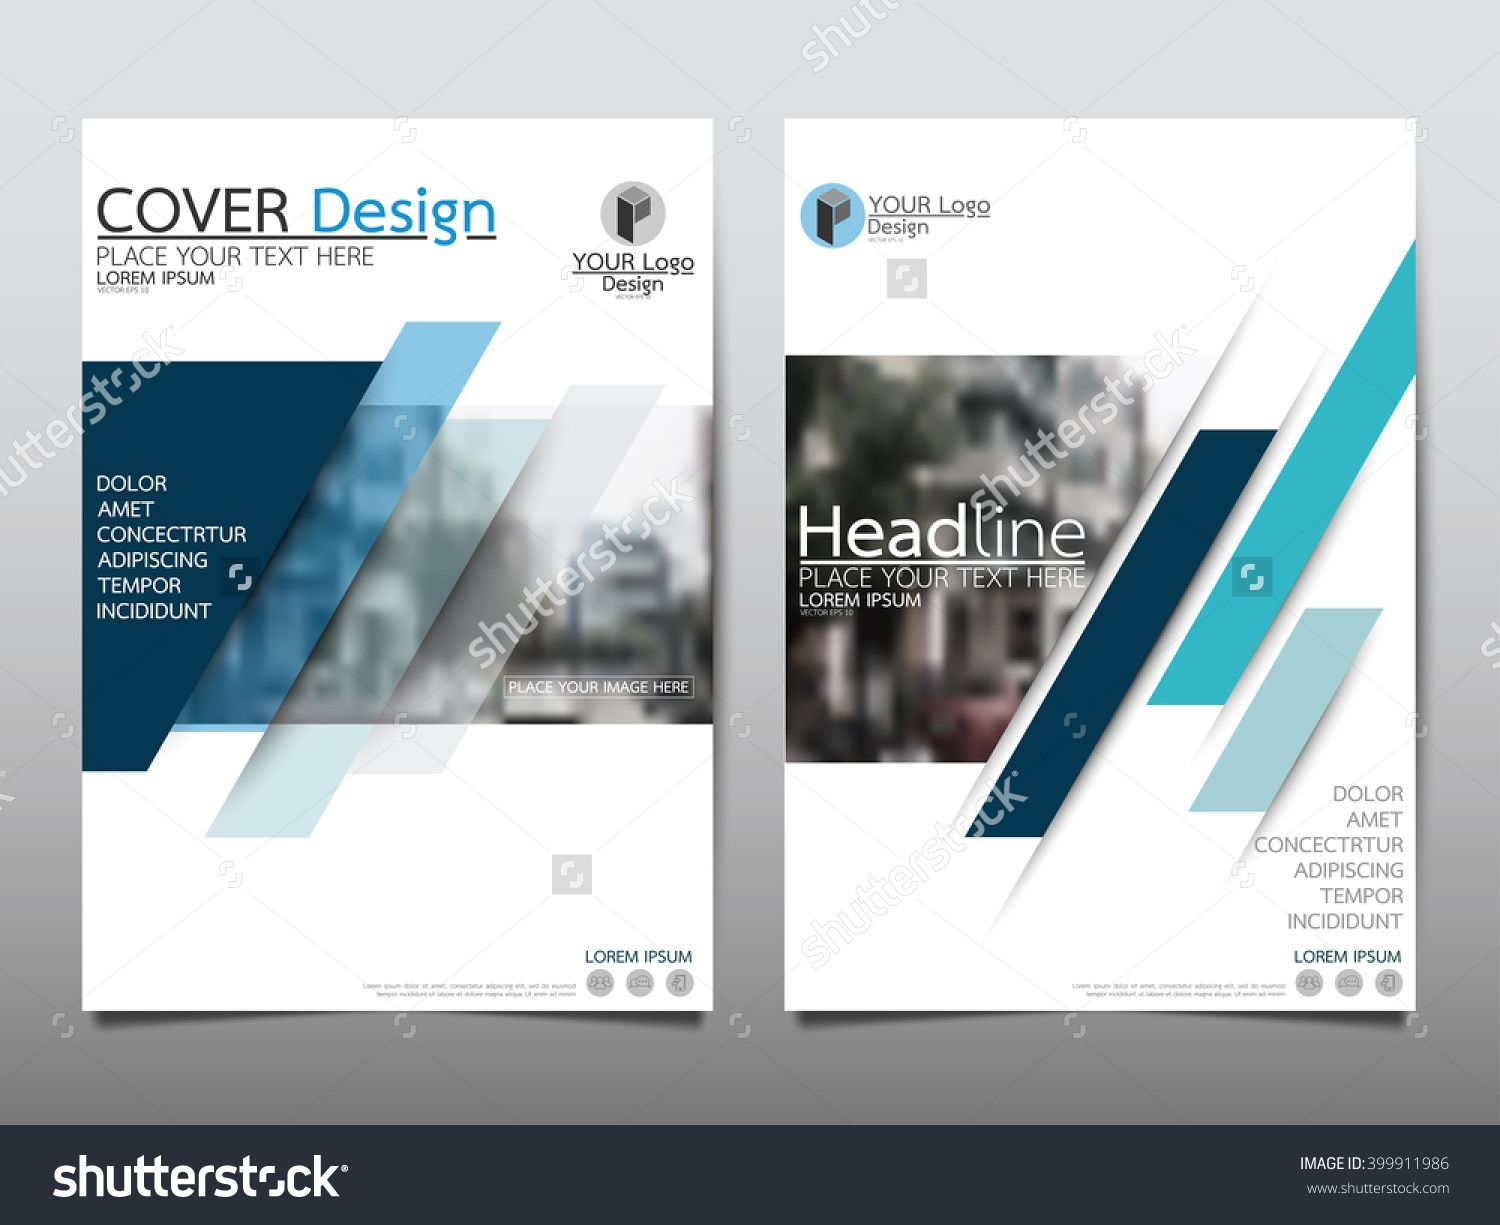 Blue Annual Report Brochure Flyer Design Template Vector, Leaflet Cover  Presentation Abstract Flat Background,